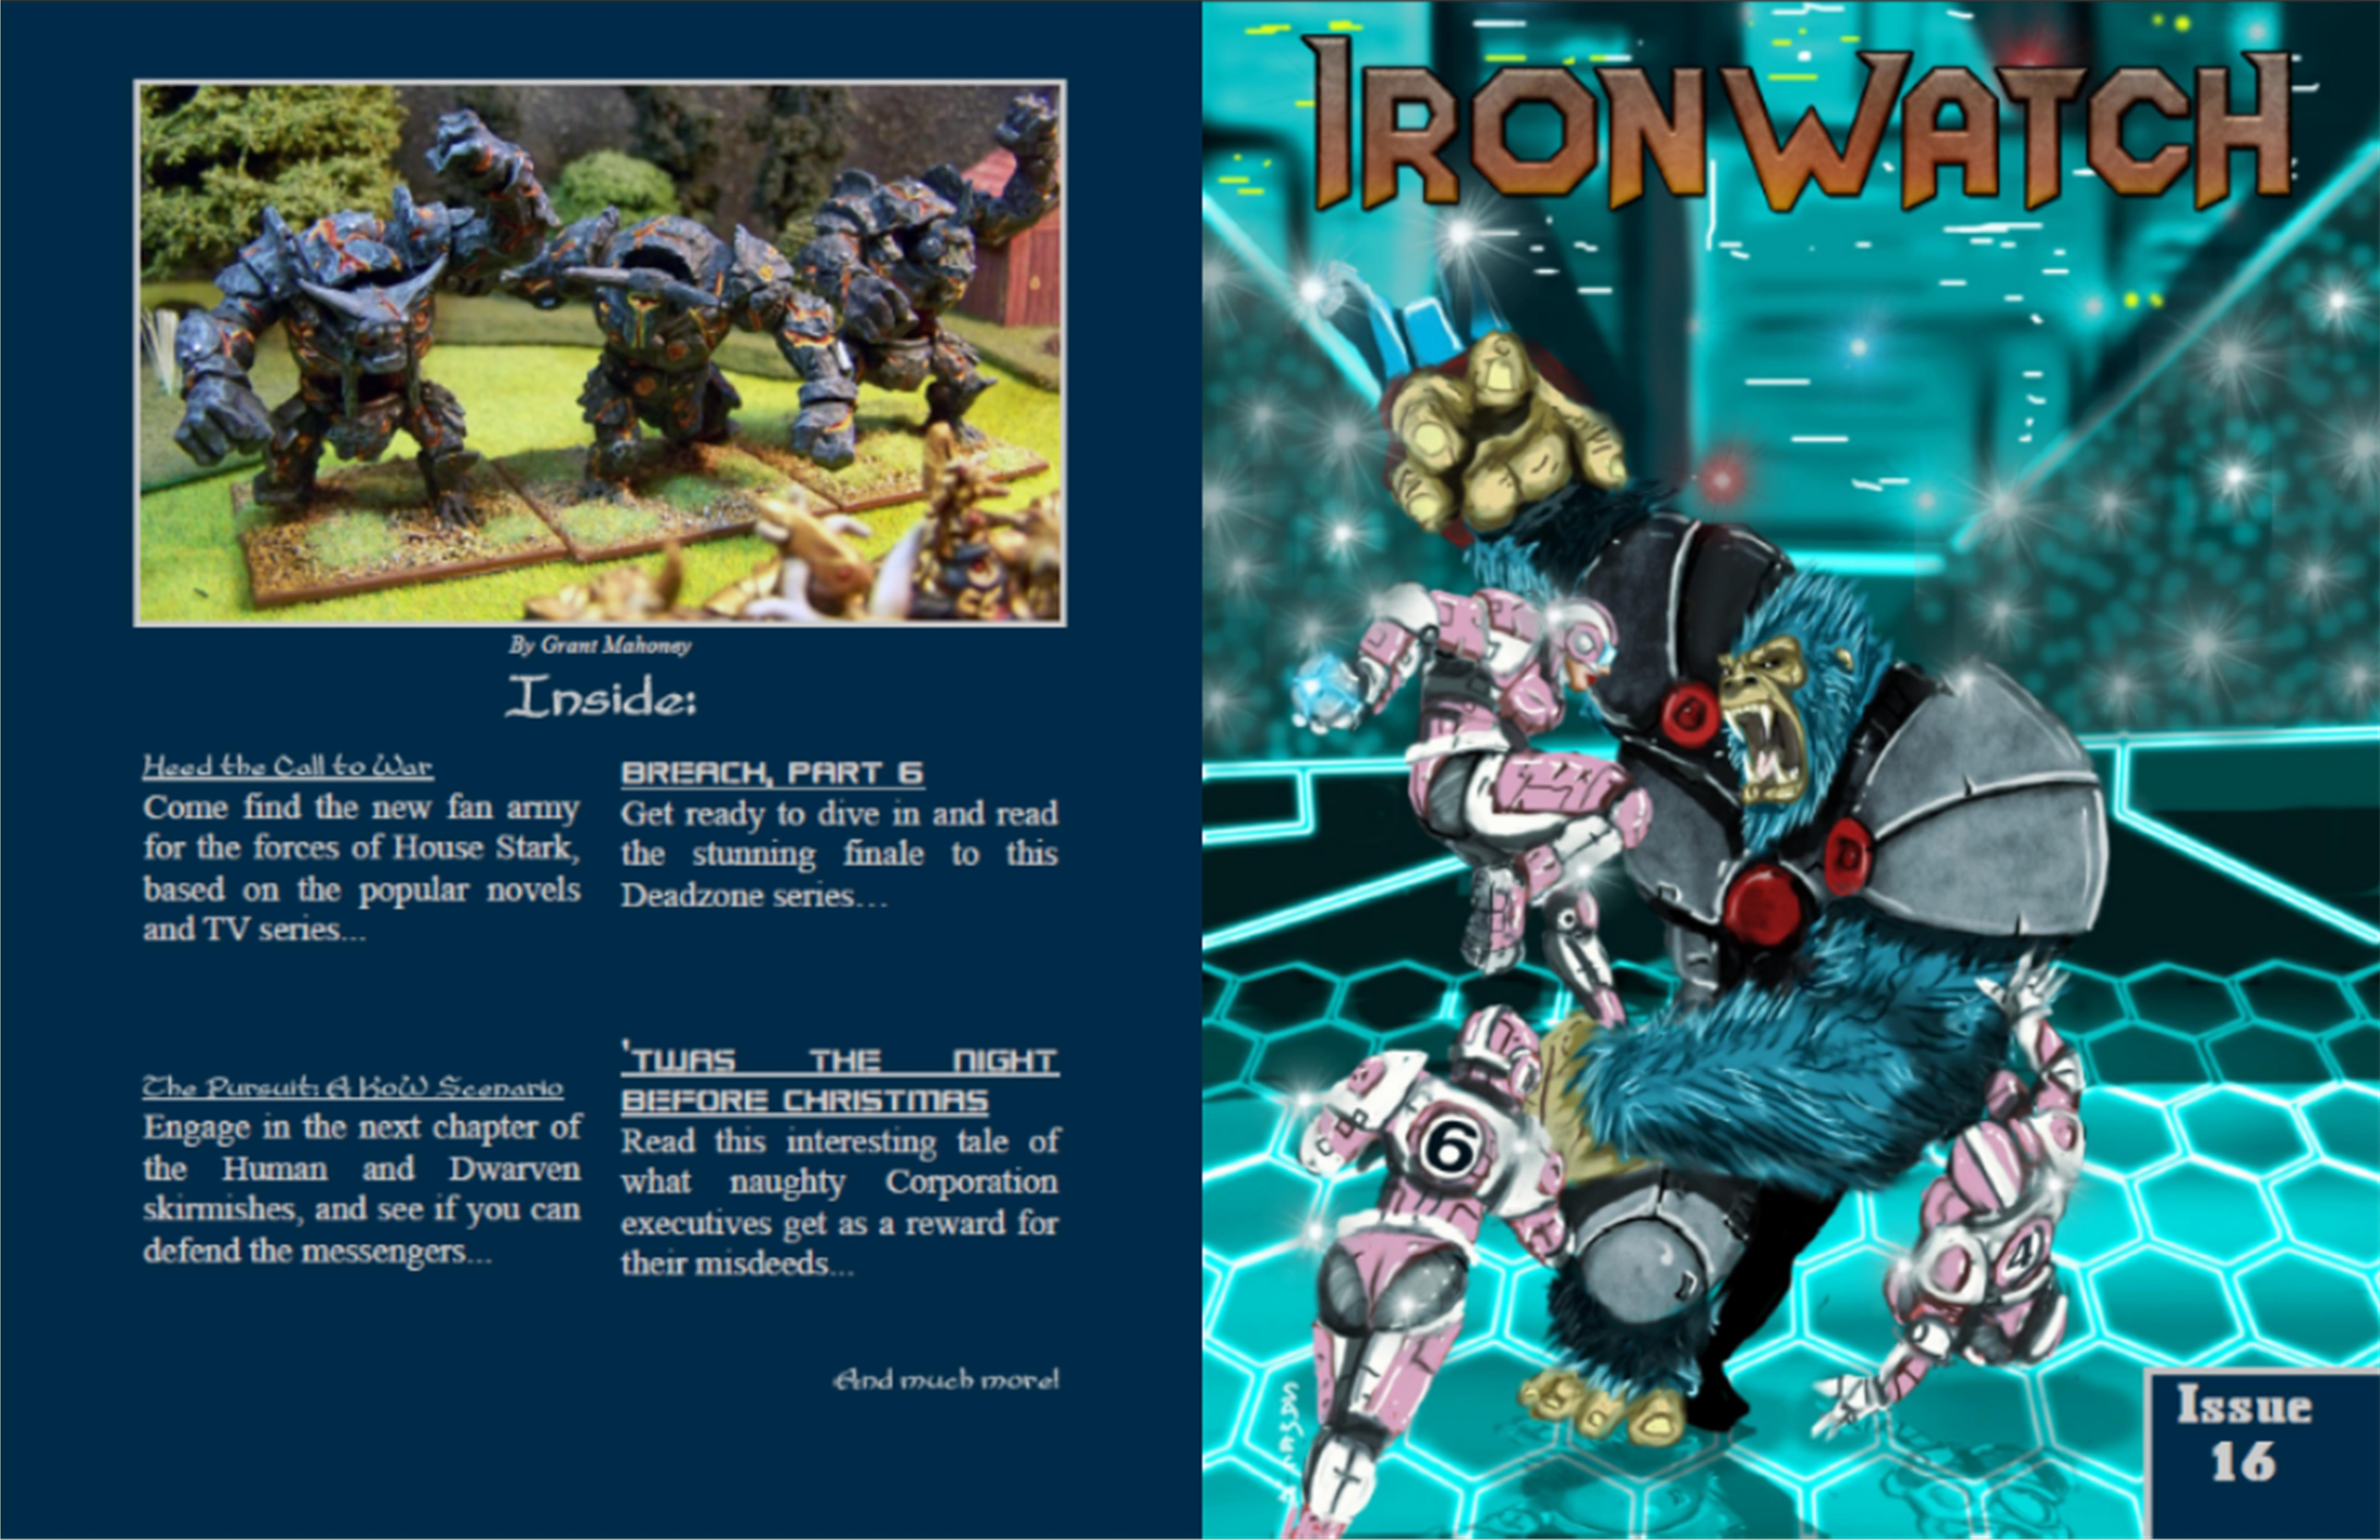 Ironwatch Issue 16 cover image